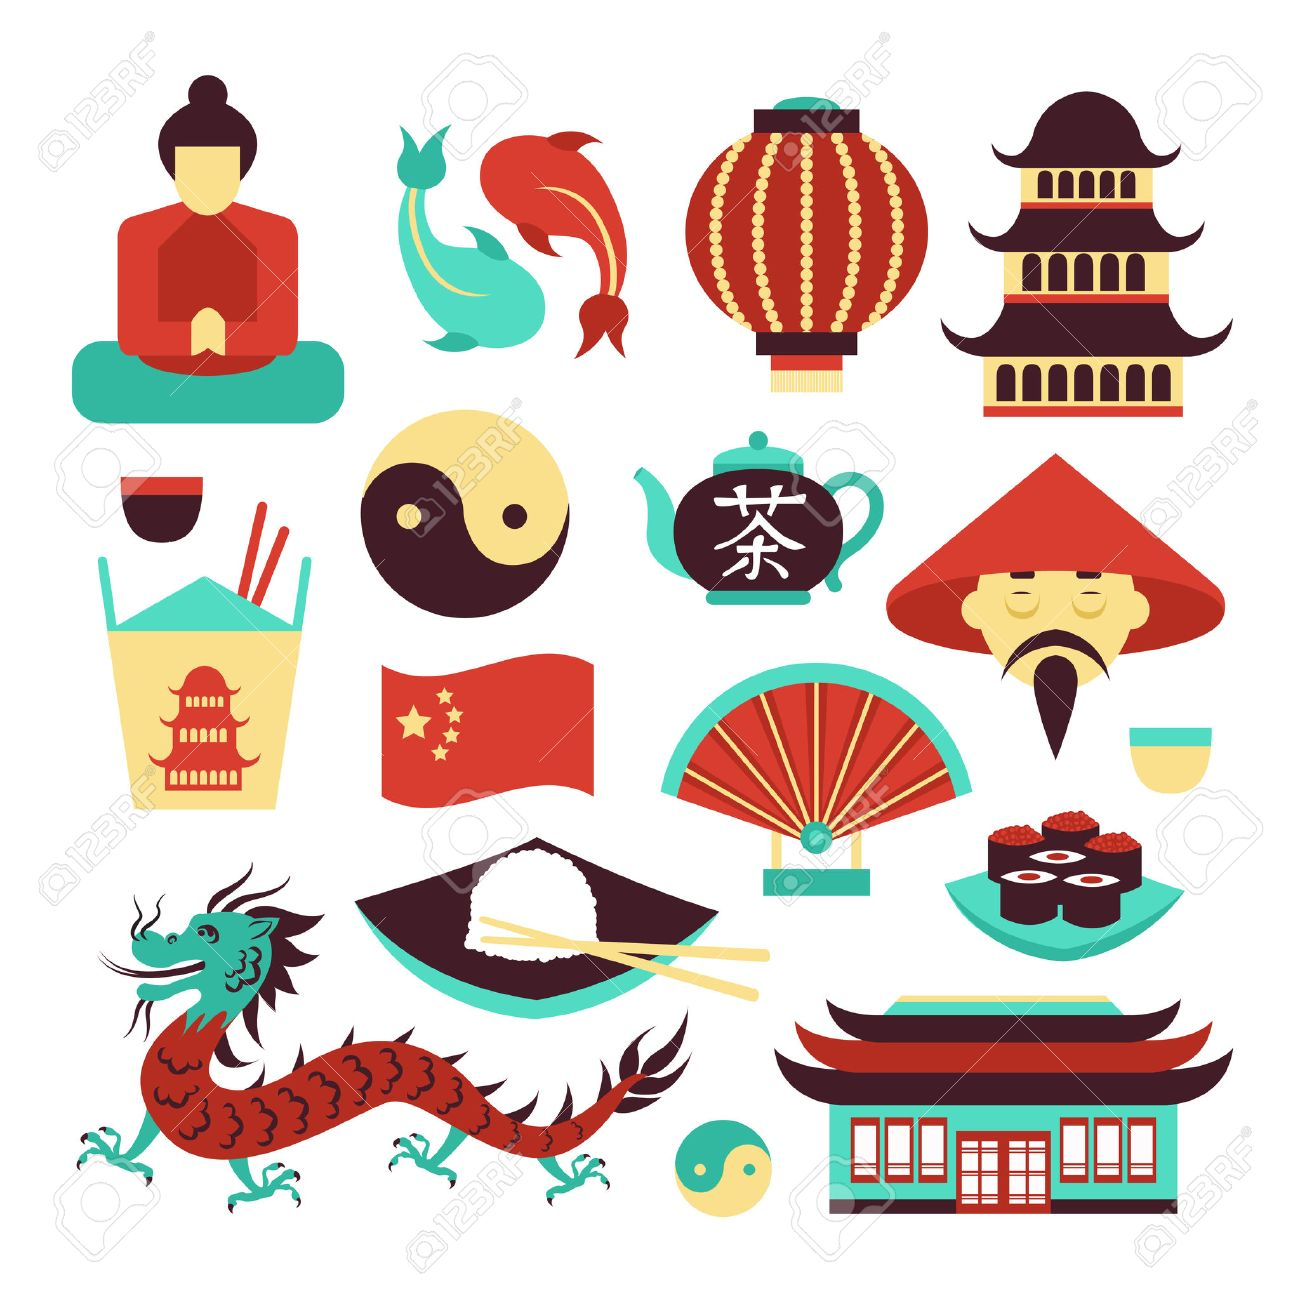 China Travel Asian Traditional Culture Symbols Set Isolated Vector